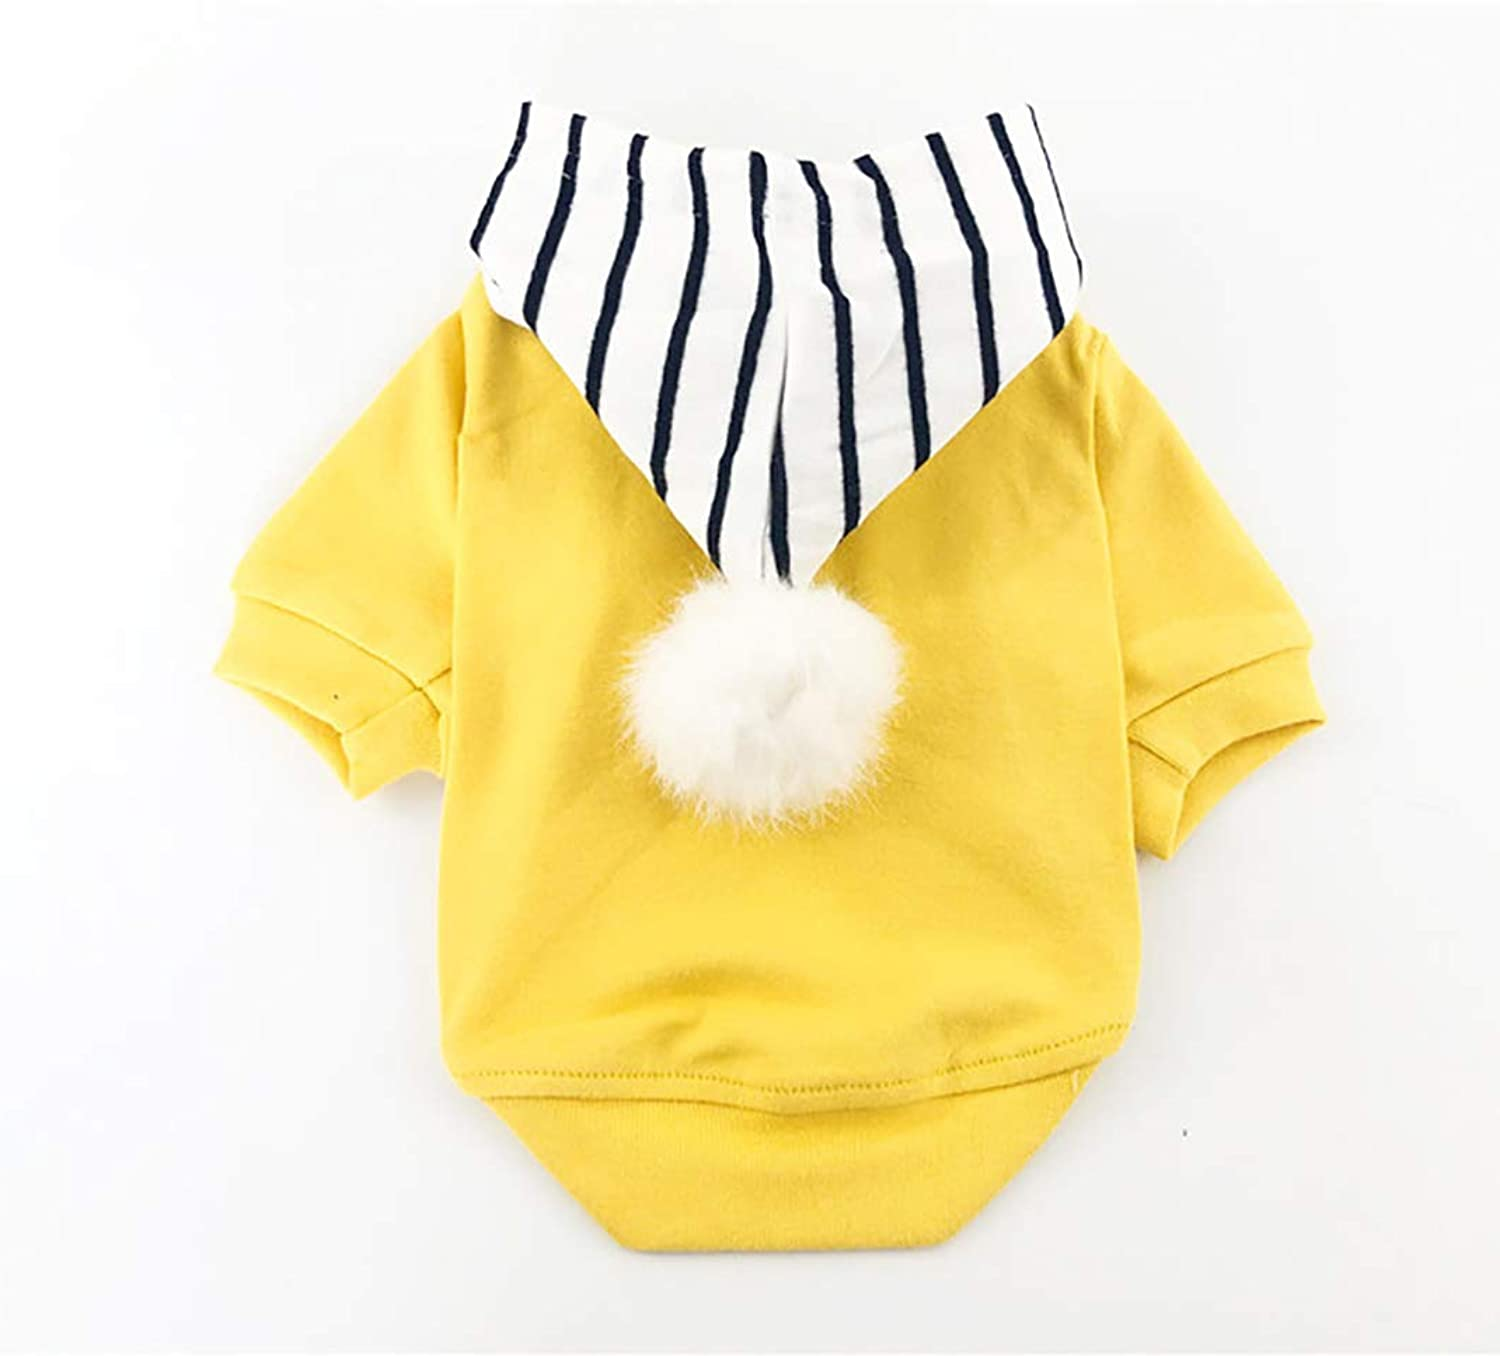 Shangyuan Pet Striped TShirt Cotton Material Comfortable and Warm Wear and Tear Resistance Easy to Clean Pet TwoLegged Costume